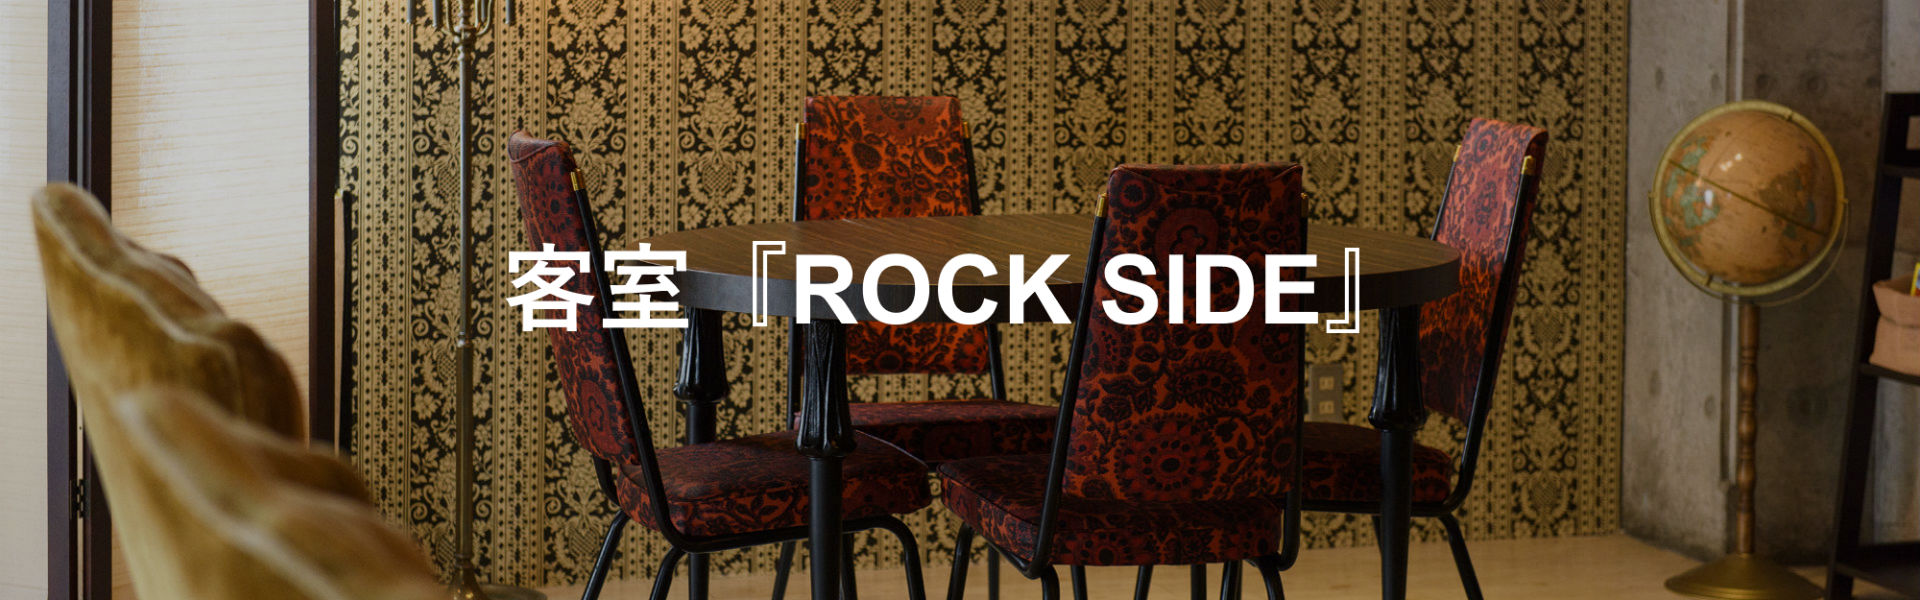 room ROCK SIDE